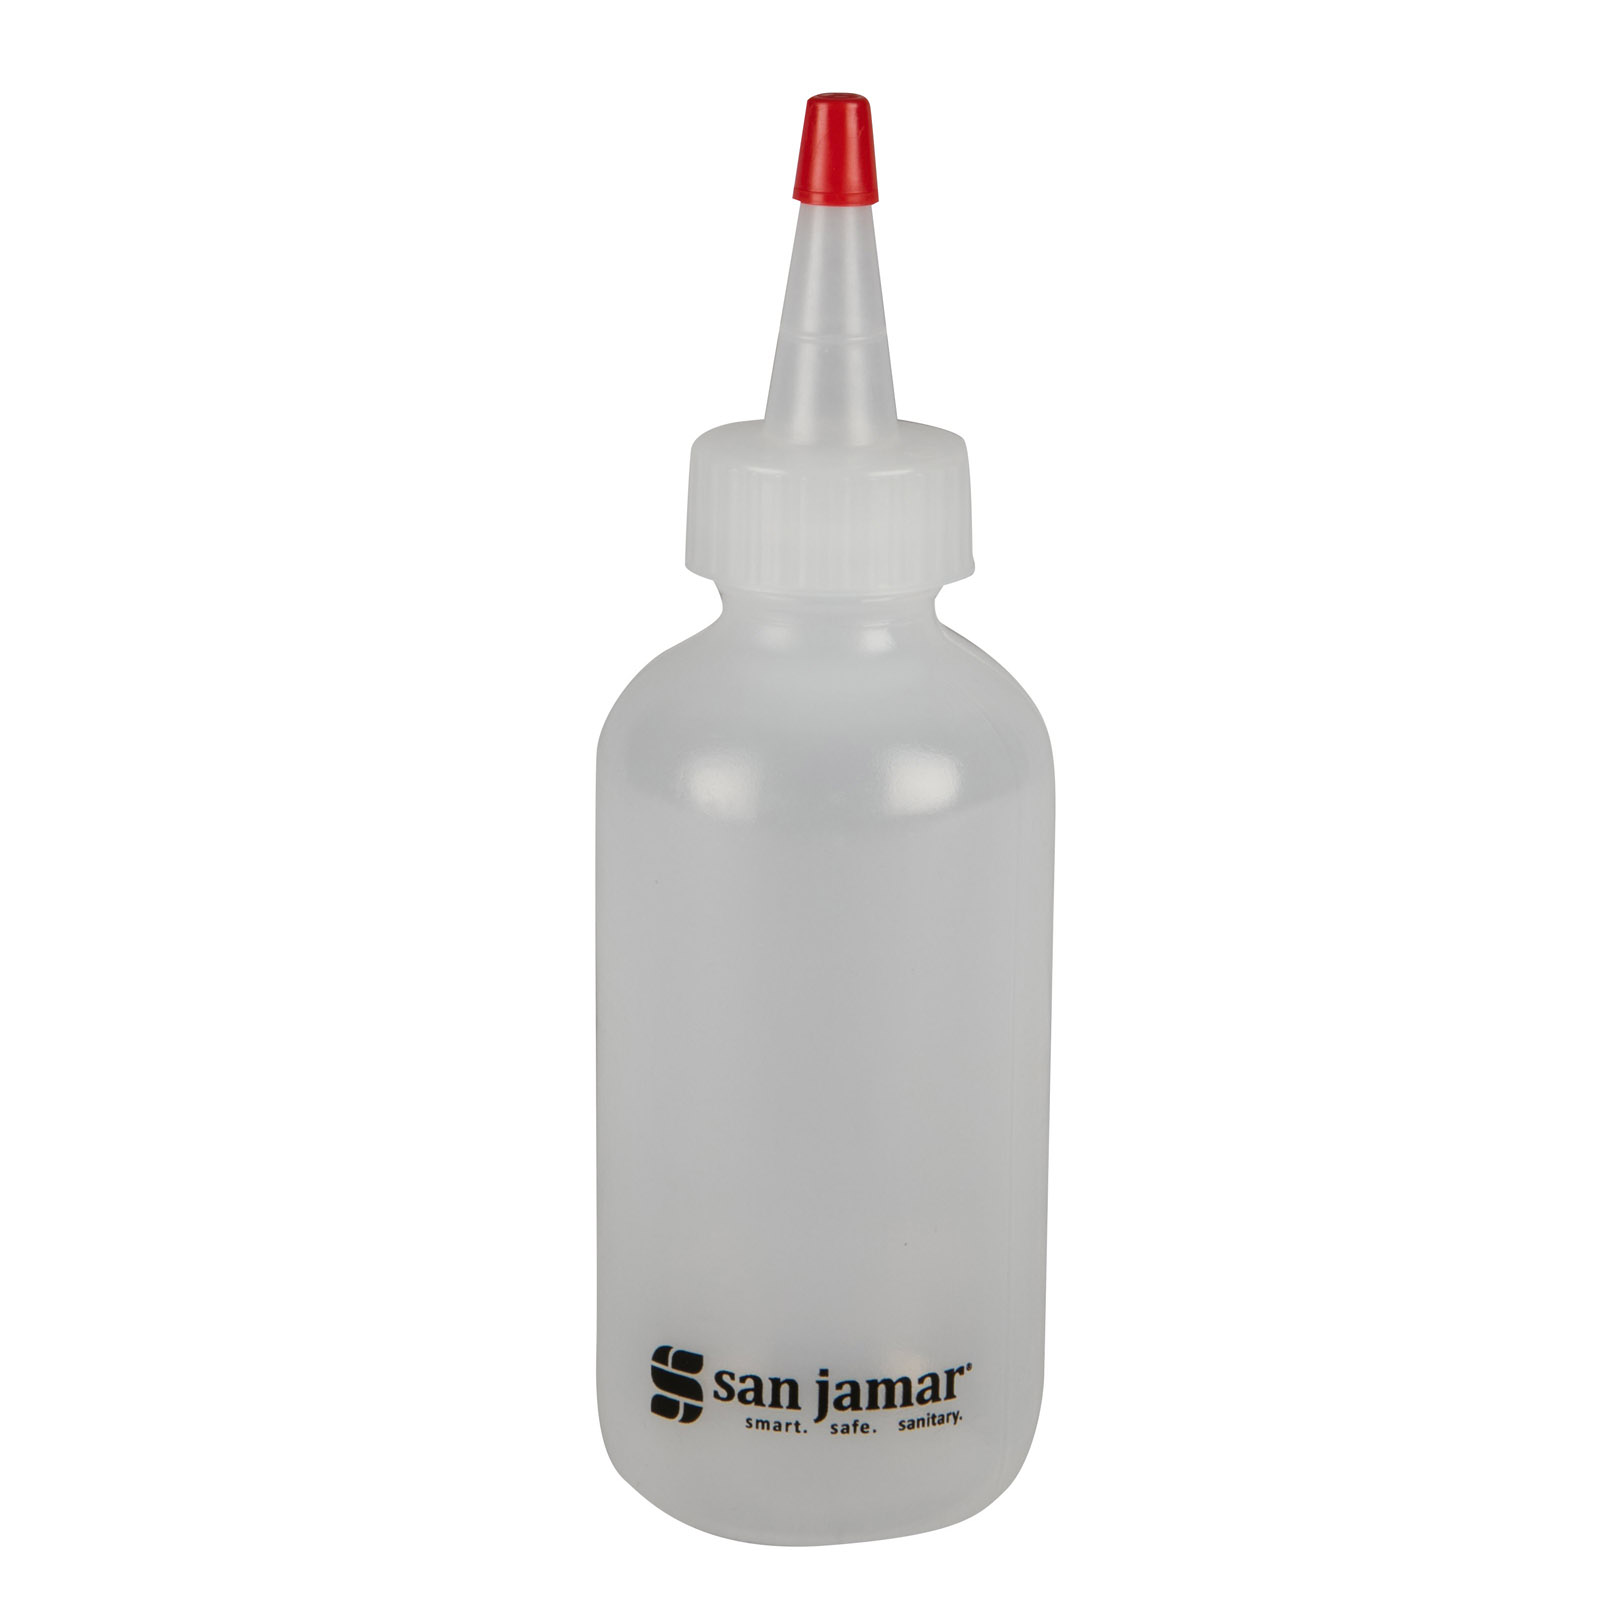 San Jamar P8004 squeeze bottle